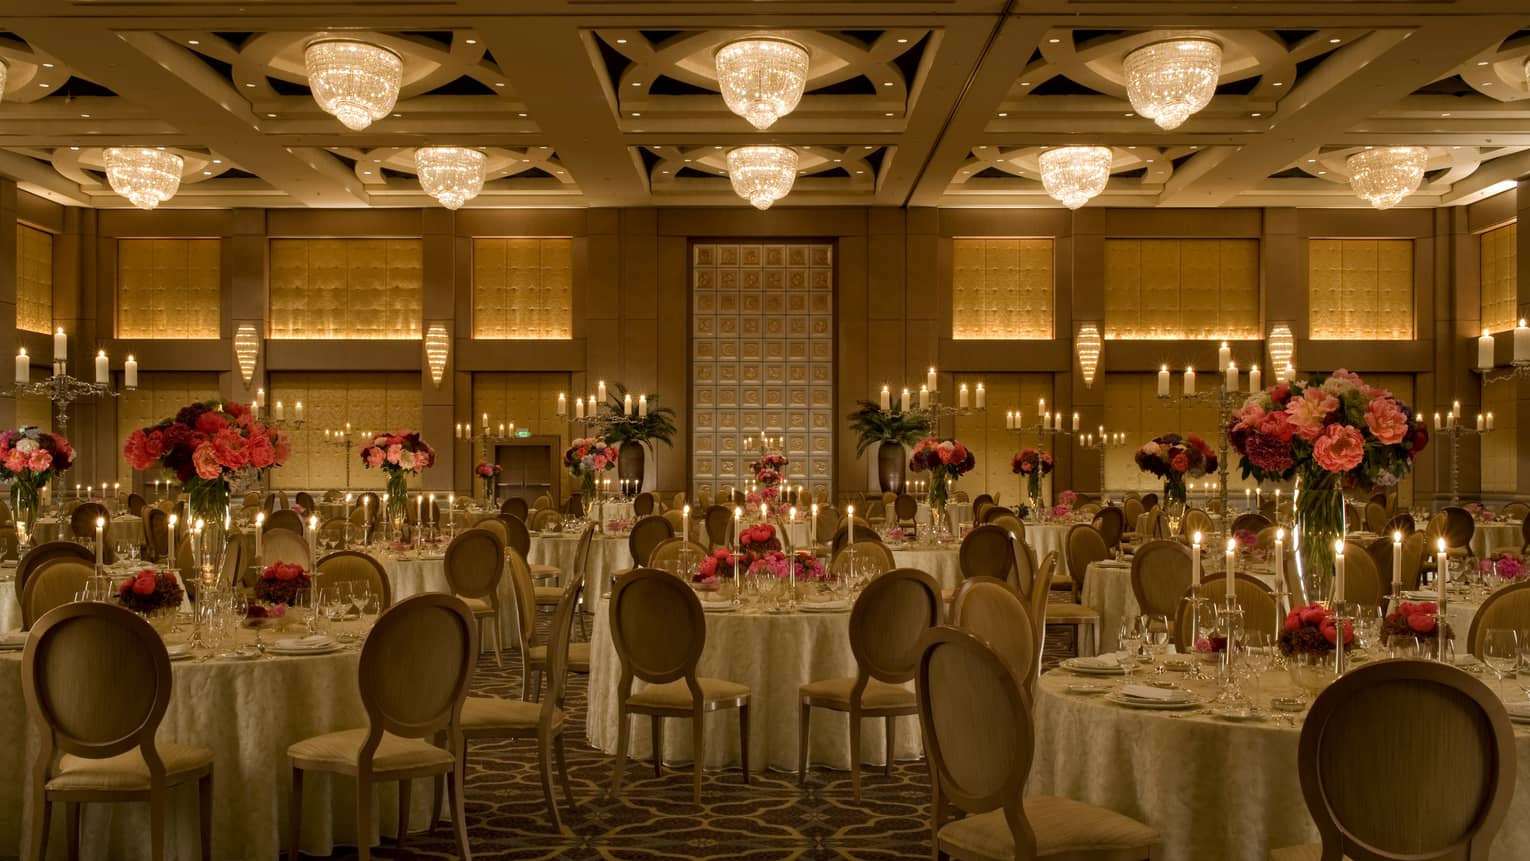 Dimly lit event room with chandeliers, tables set with large floral displays, glasses and candles